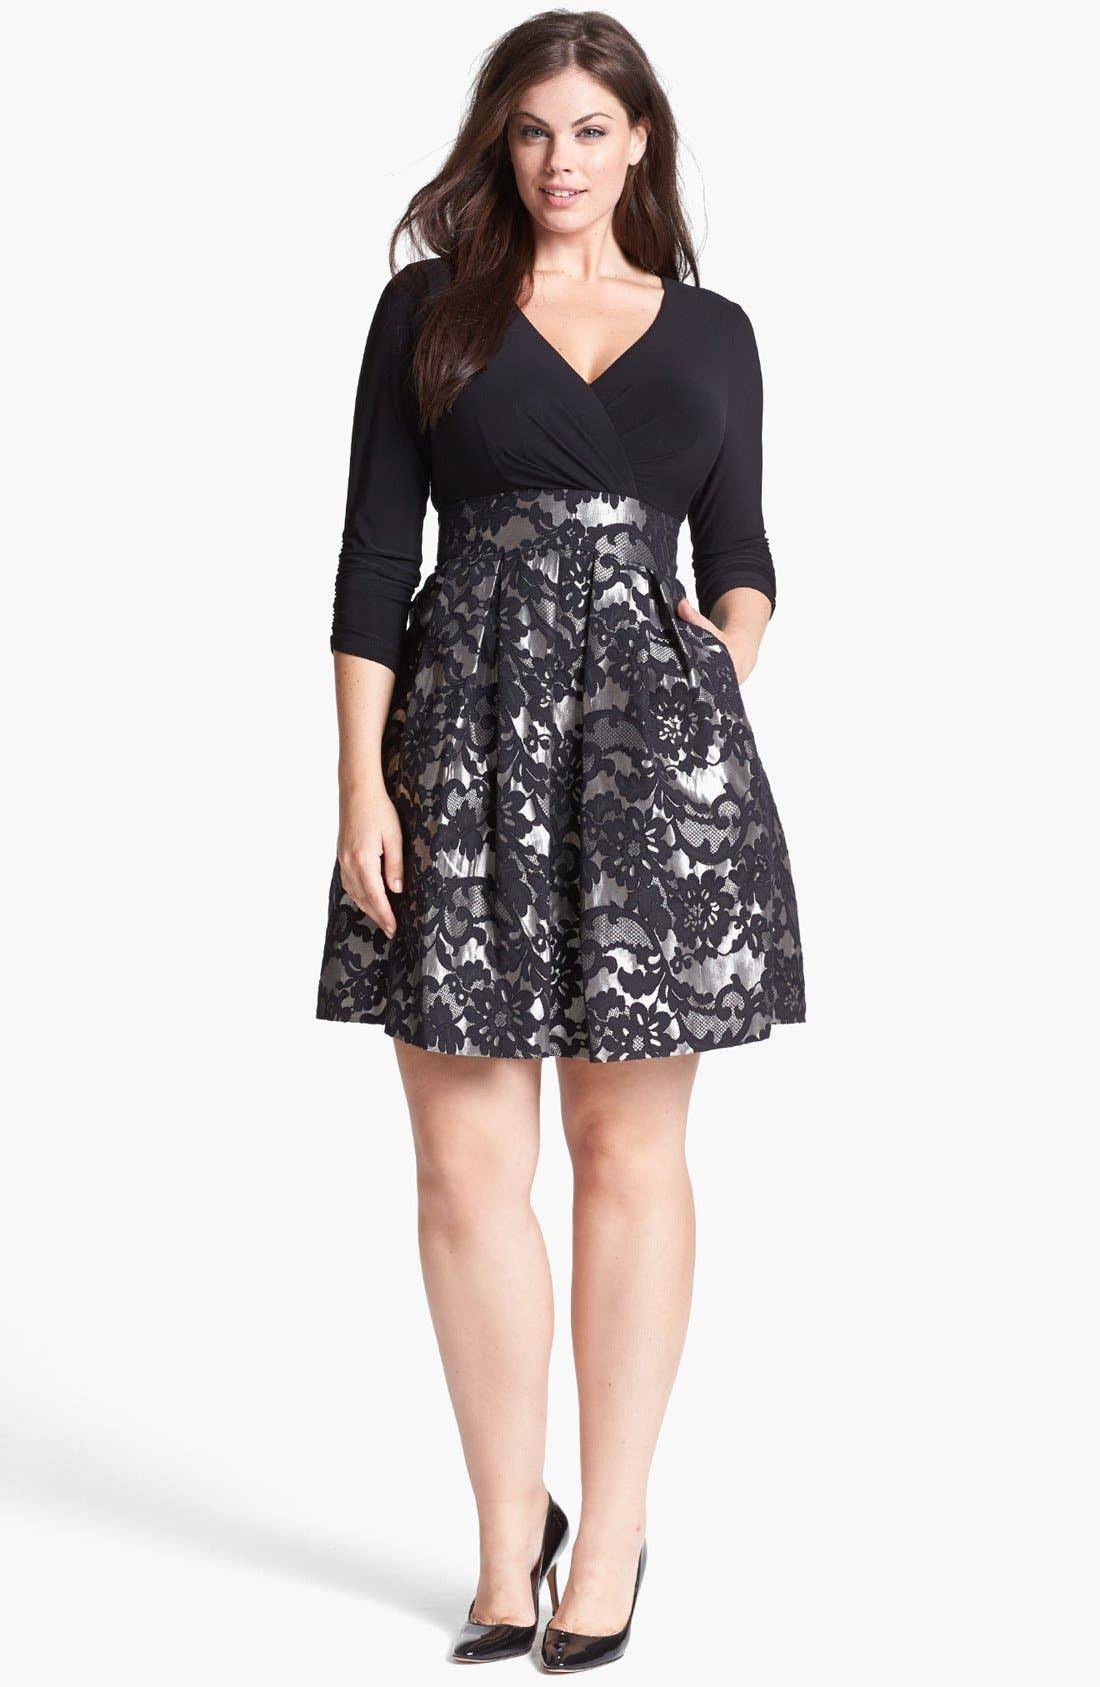 Alternate Image 1 Selected - Eliza J Jacquard Skirt Dress (Plus Size)